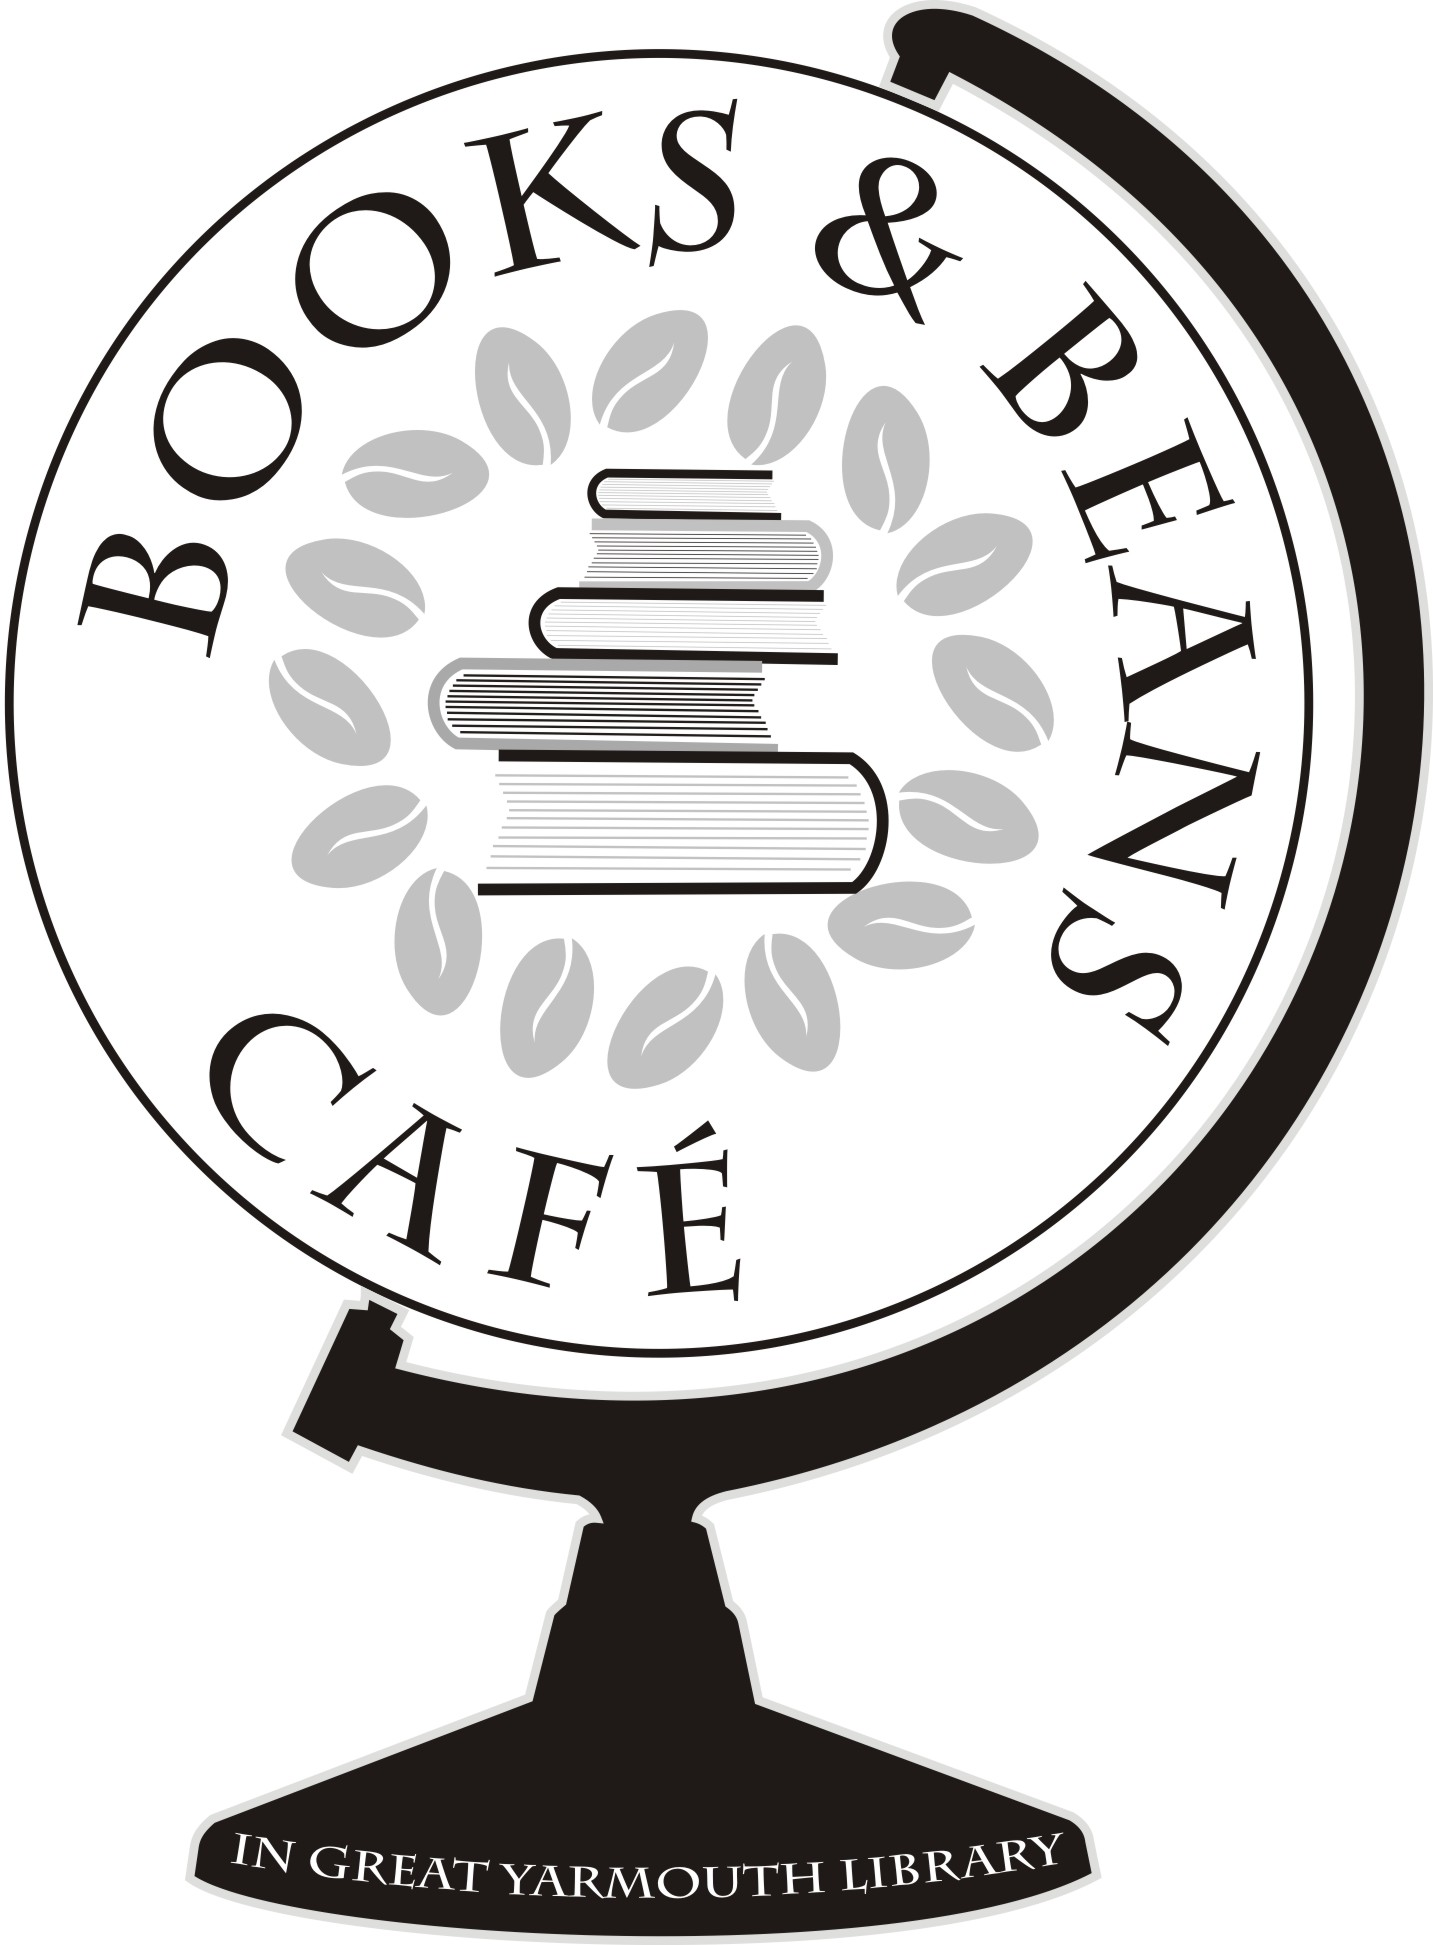 Books & beans final logo.jpg